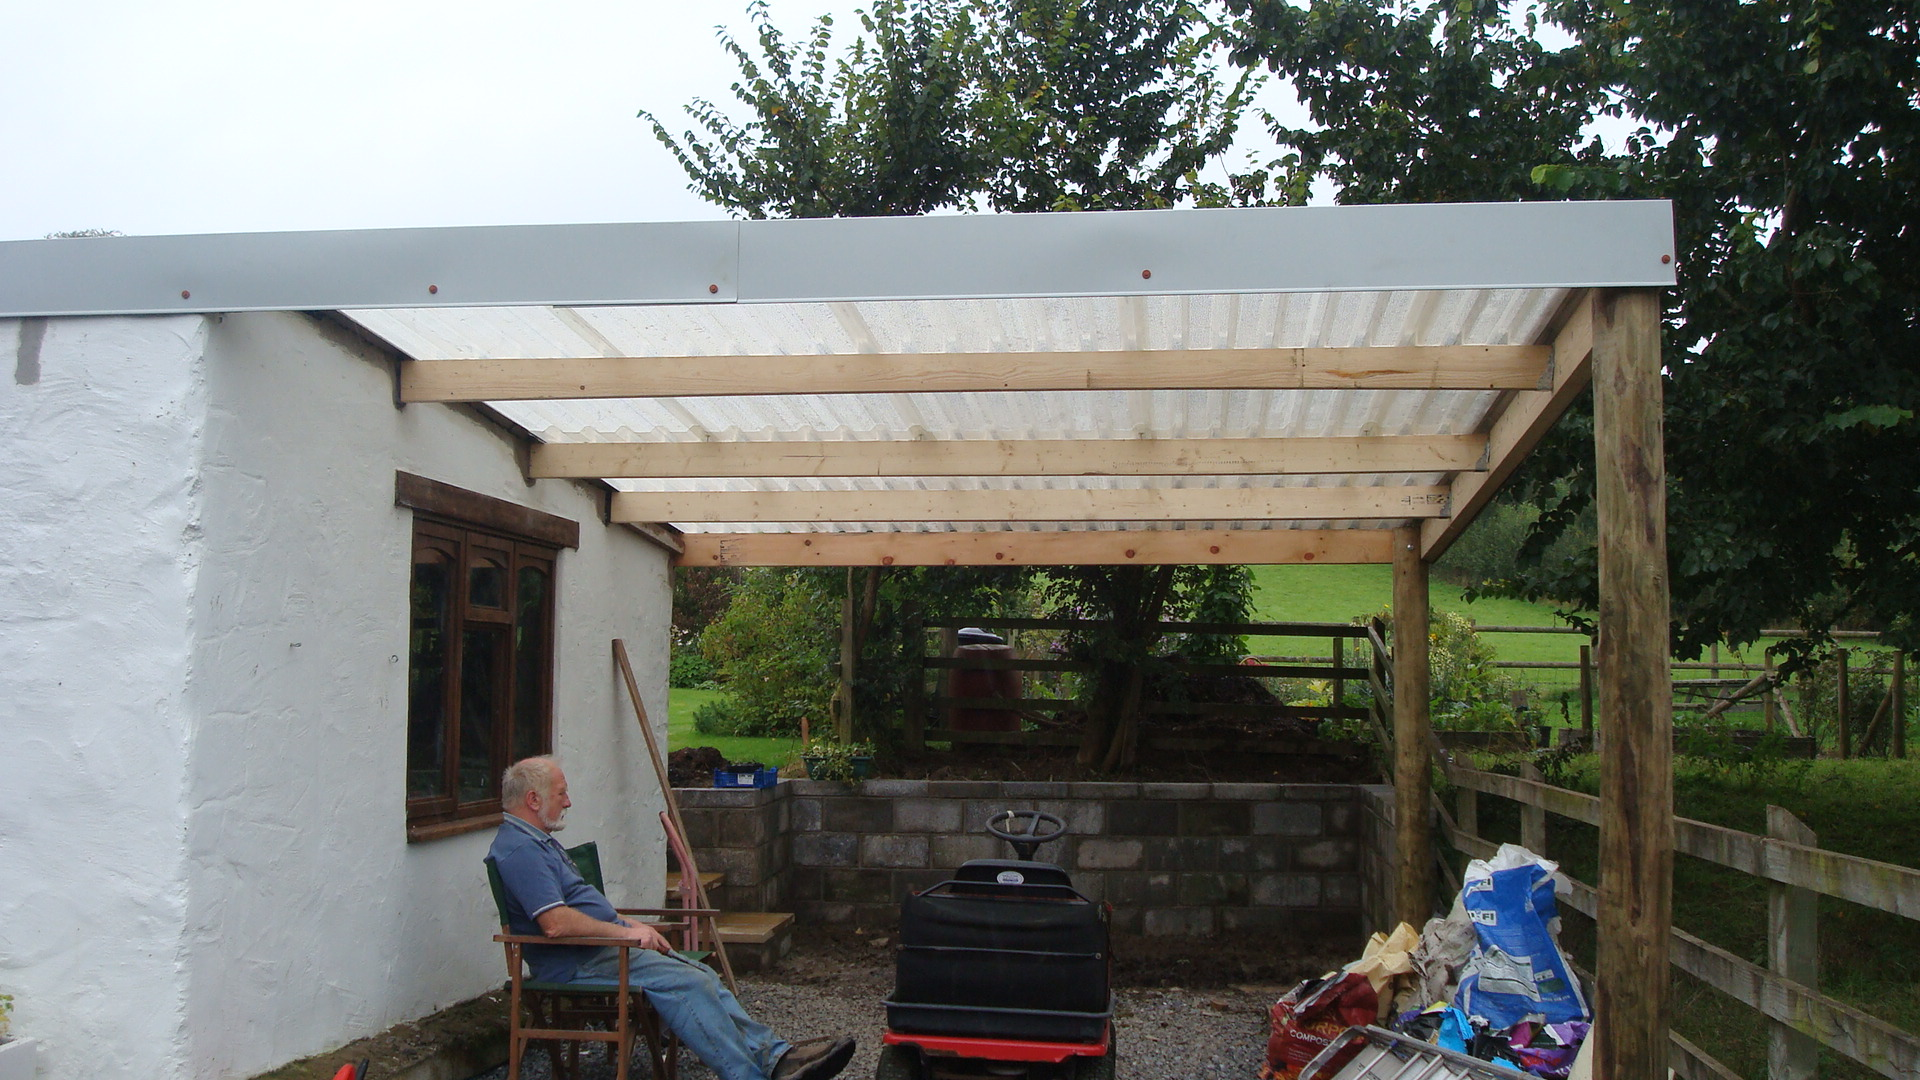 September 26 New Garden Shelter Lletty S Blog